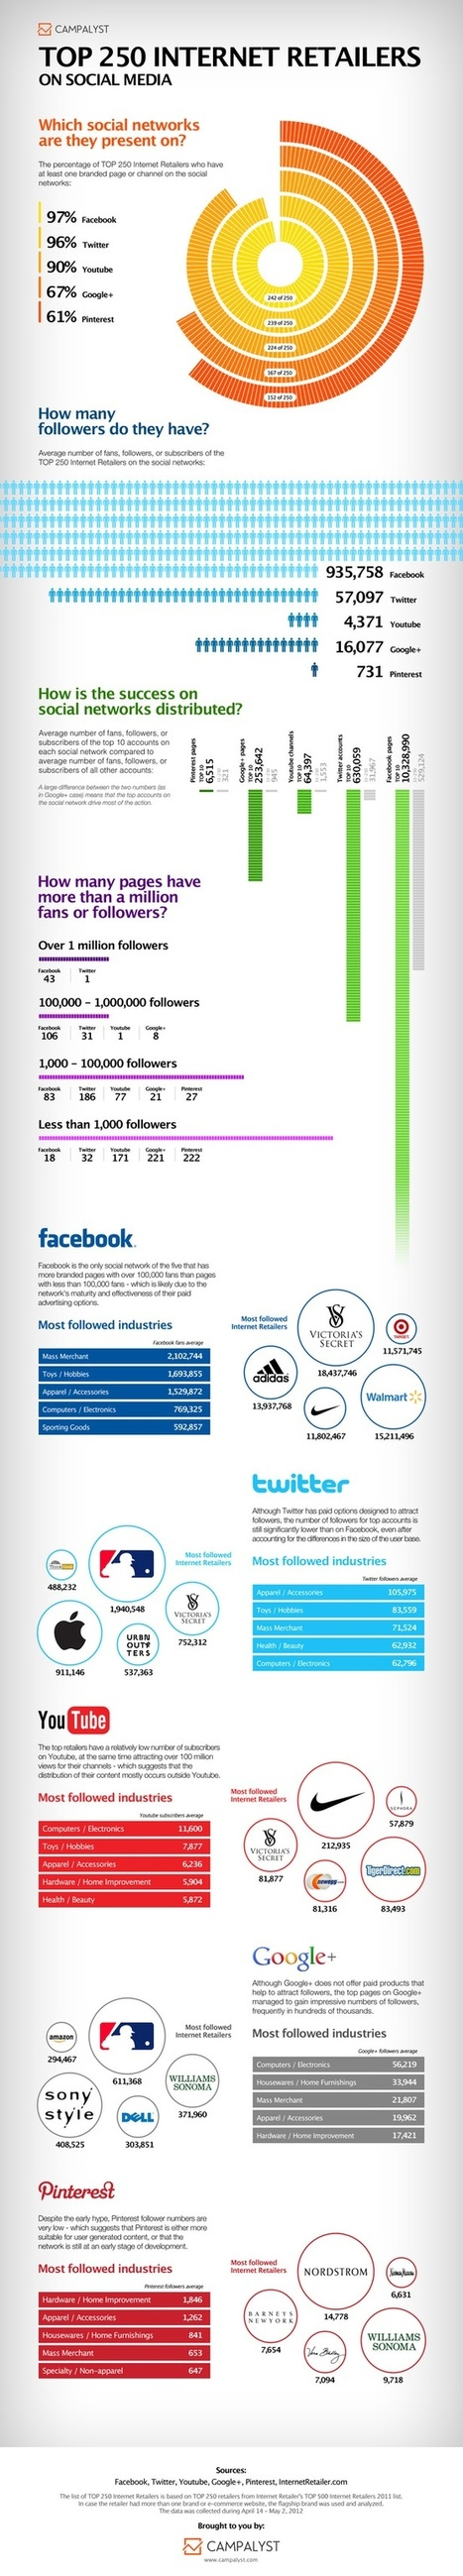 Top Social Internet Retailers [Infographic] | Web 2.0 for juandoming | Scoop.it